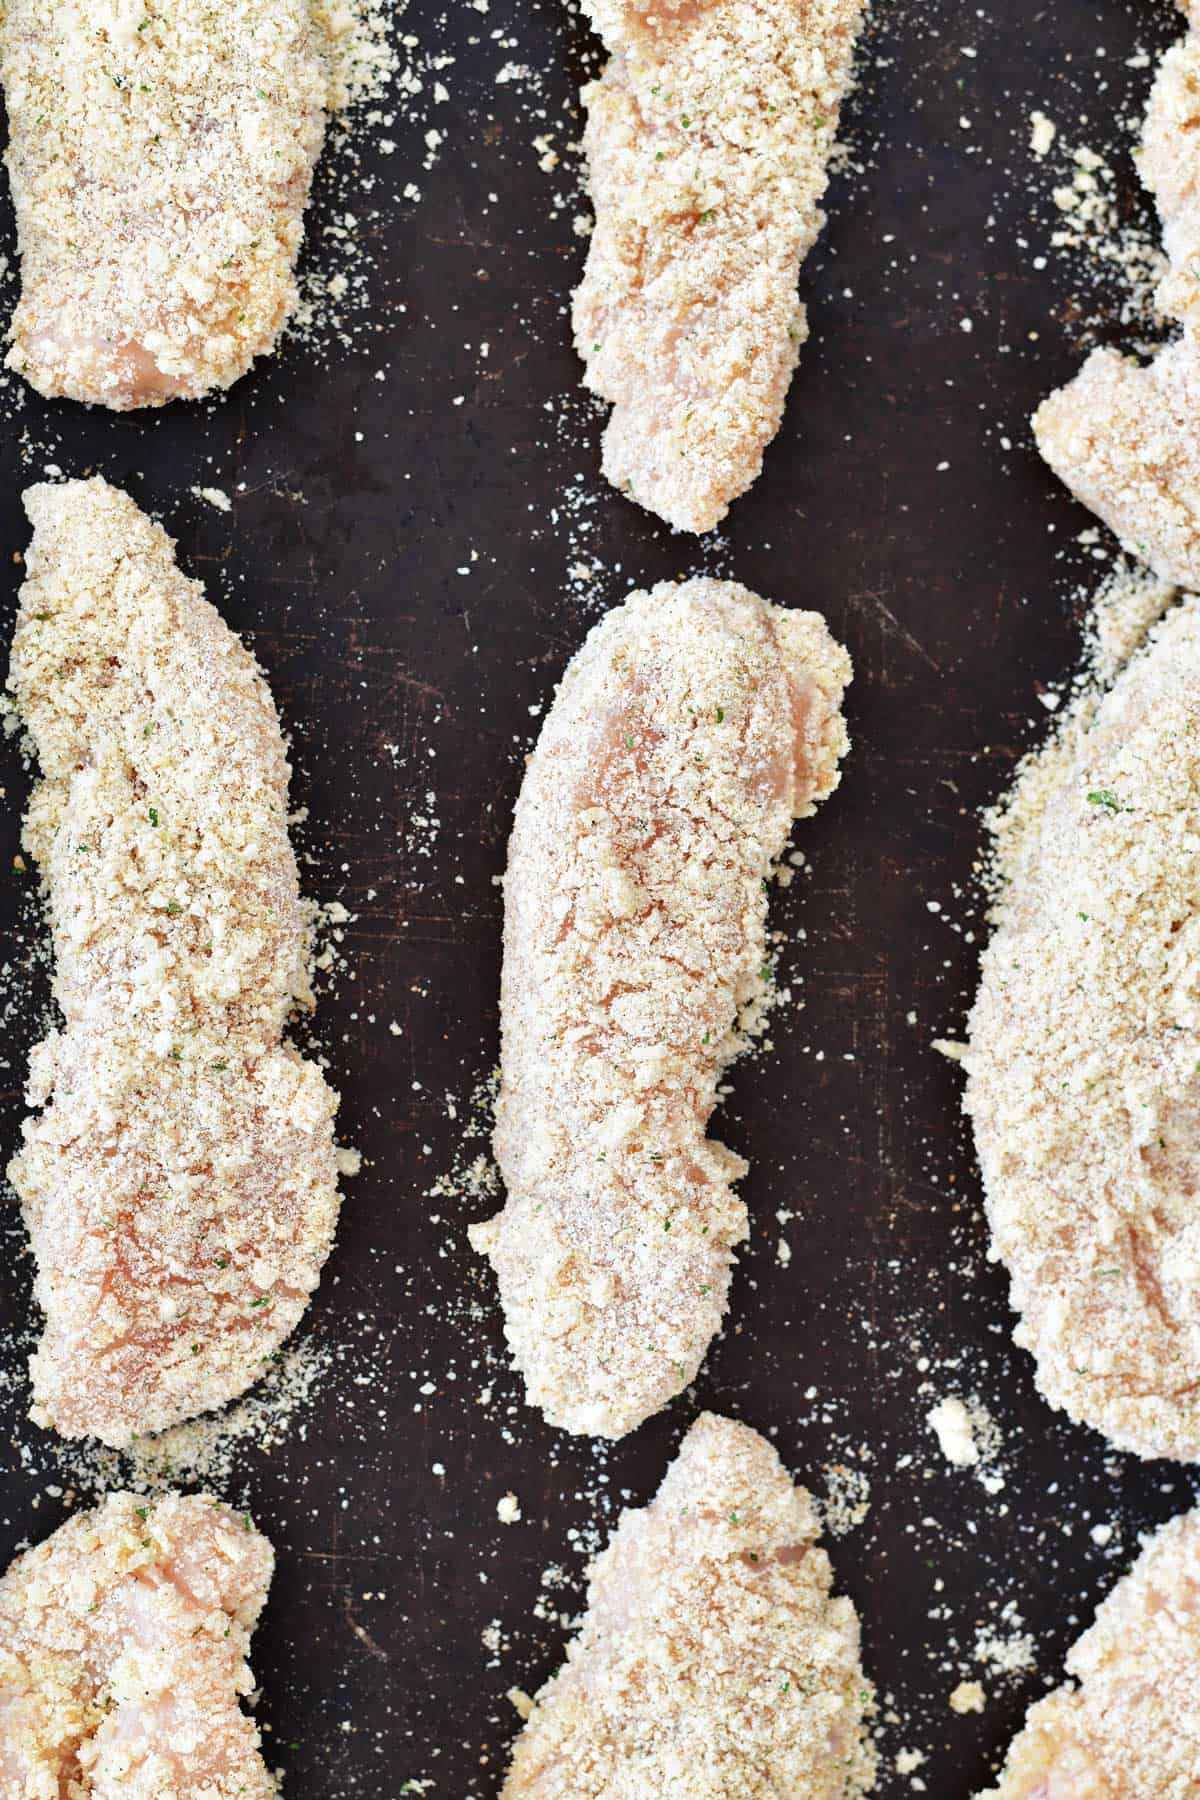 coated garlic parmesan chicken tenders on a baking sheet